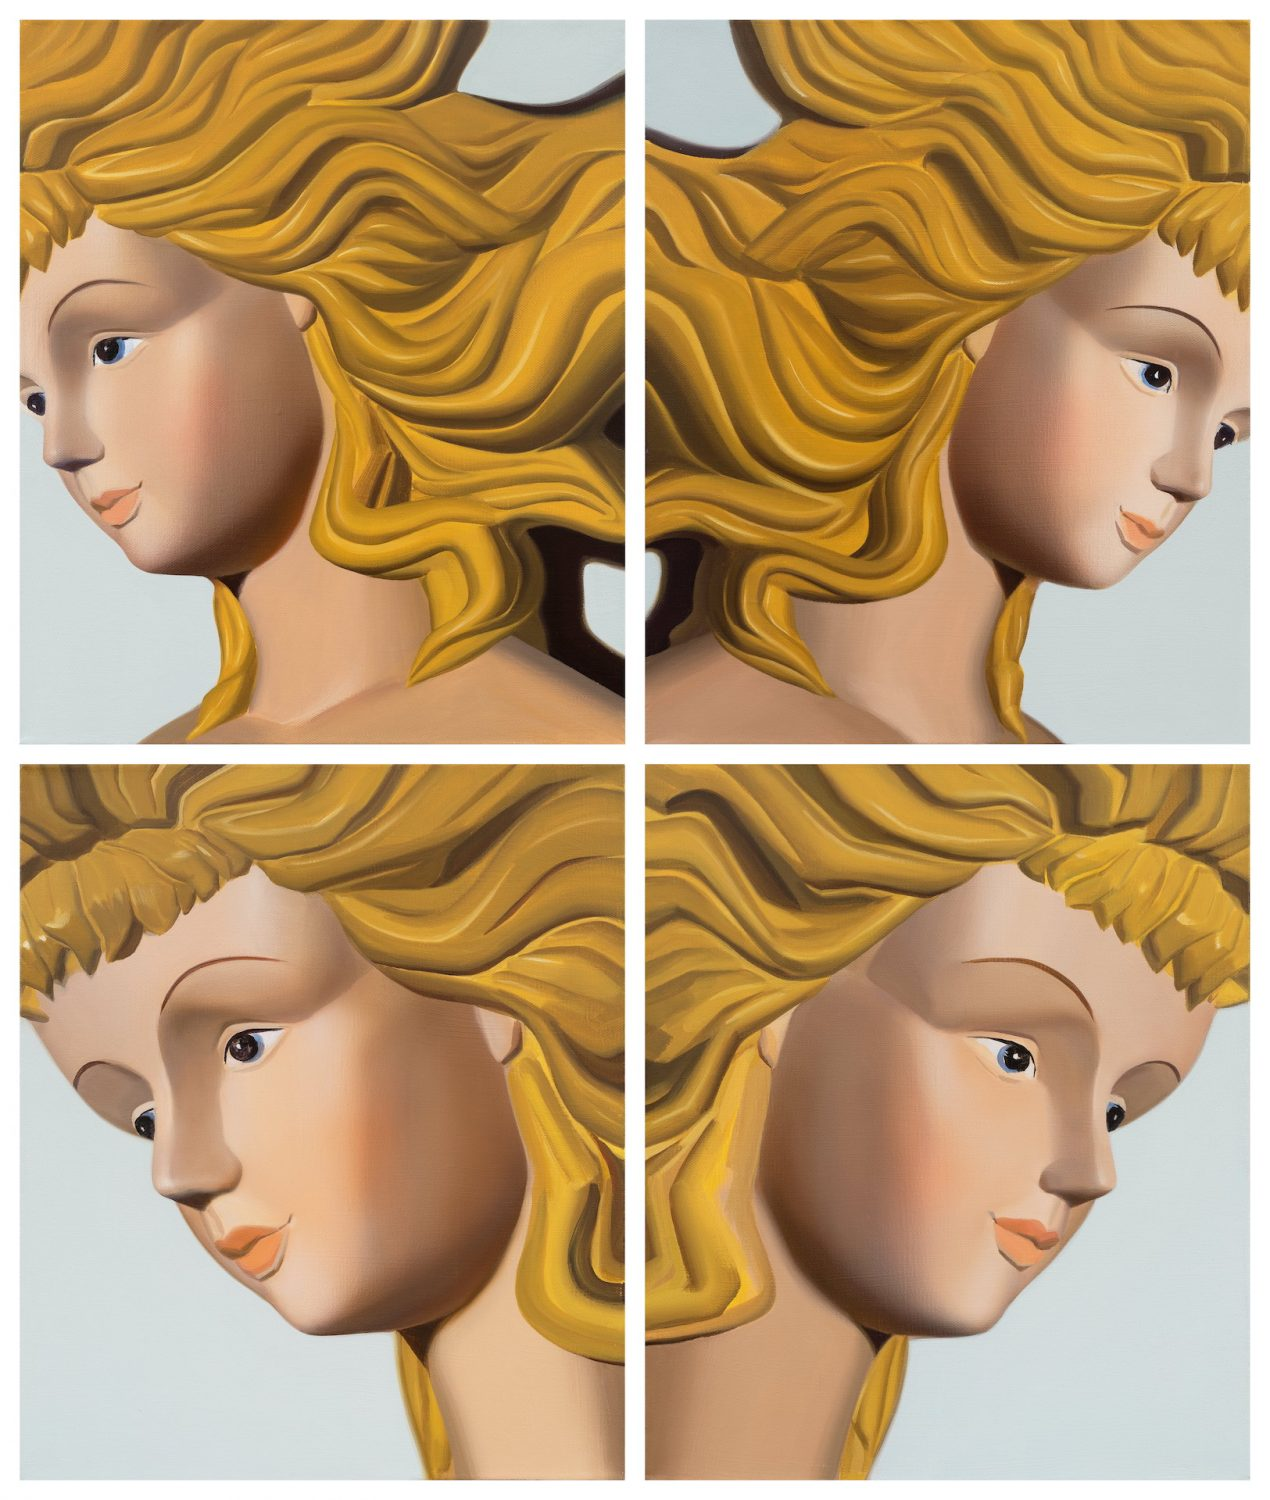 Whatchu Looking at